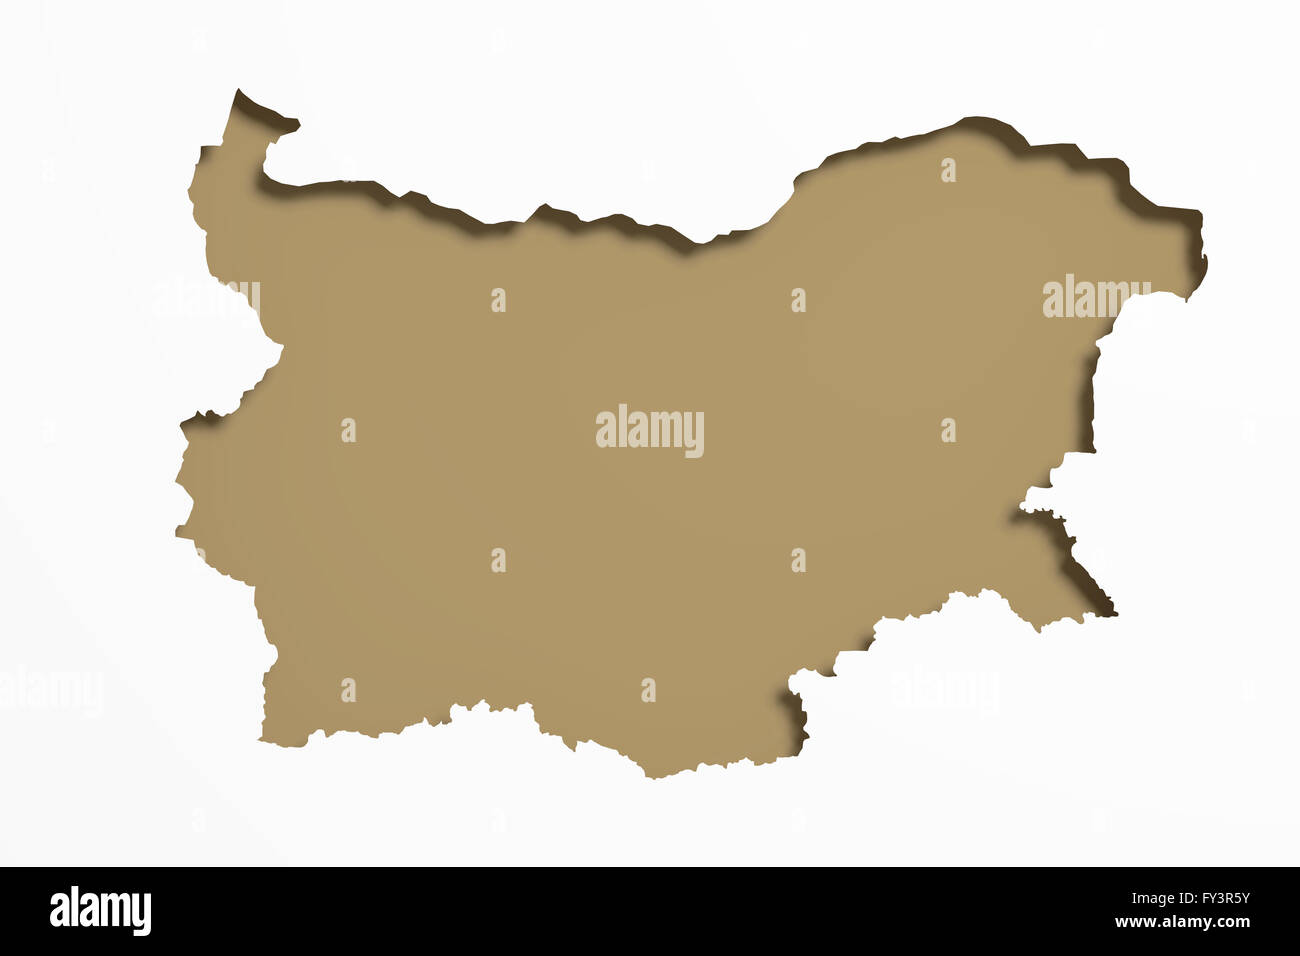 3d rendering of a Bulgaria map on white background. Stock Photo